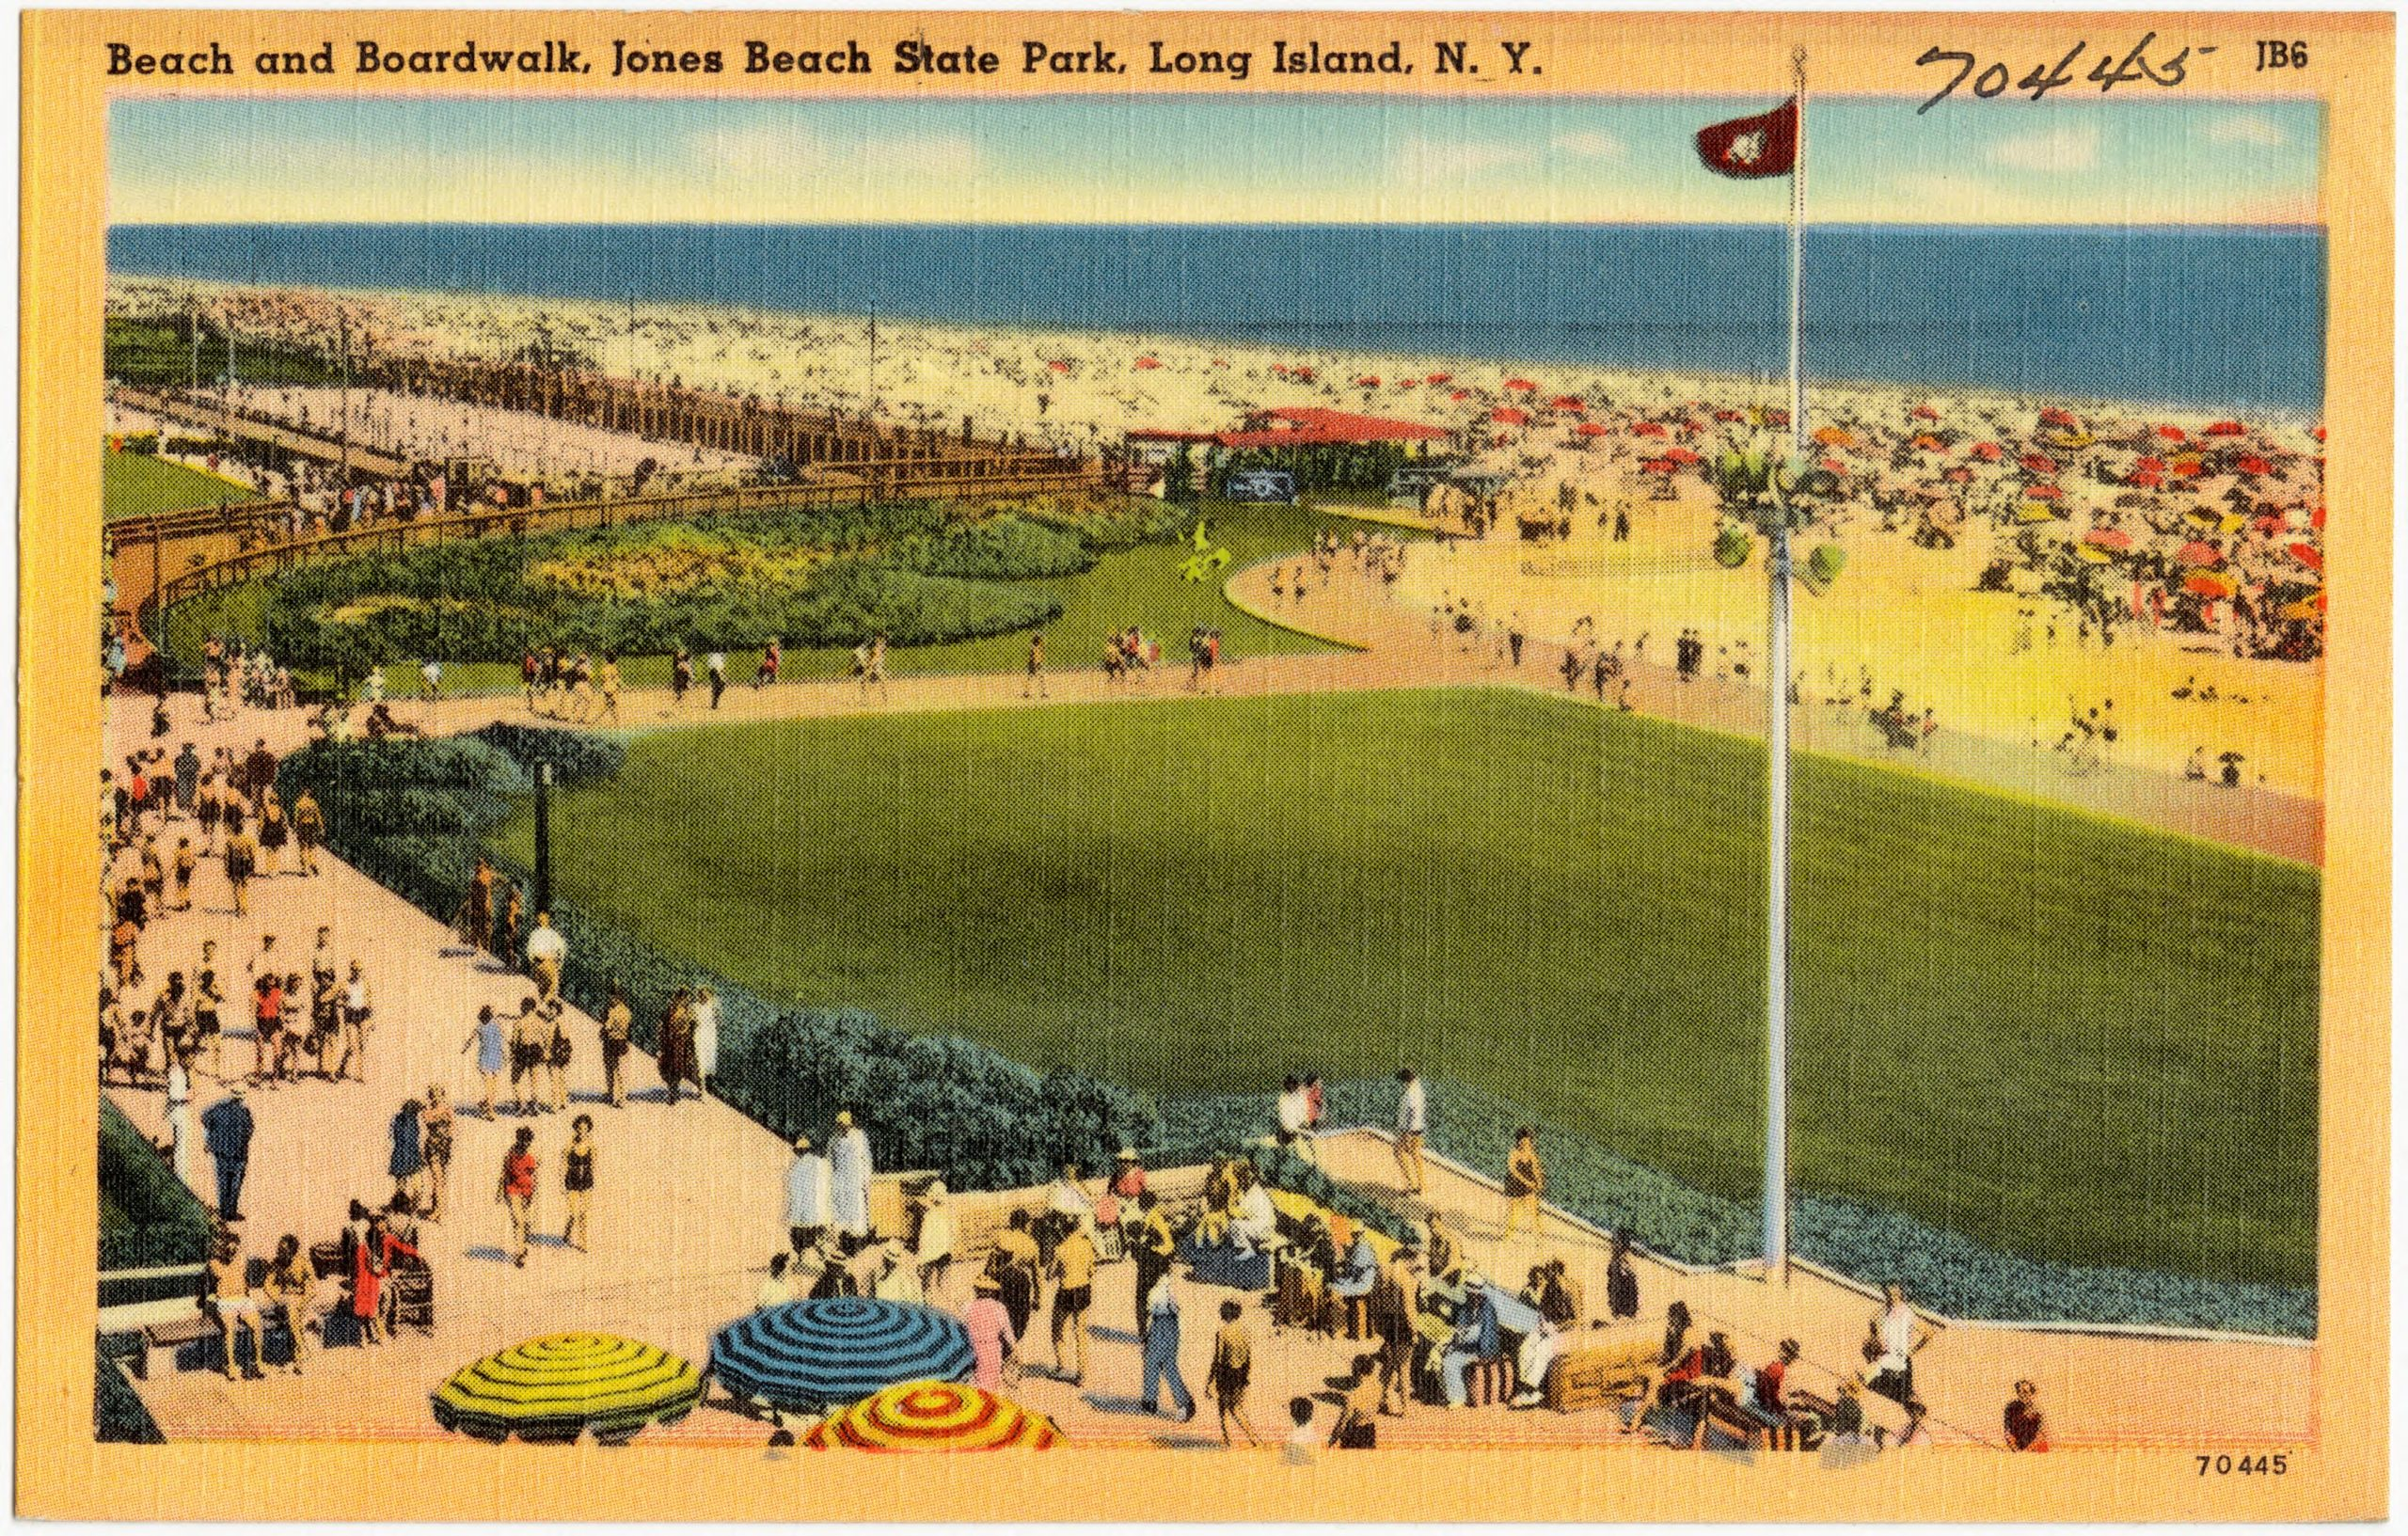 11 Pictures Of Jones Beach State Park Long Island From